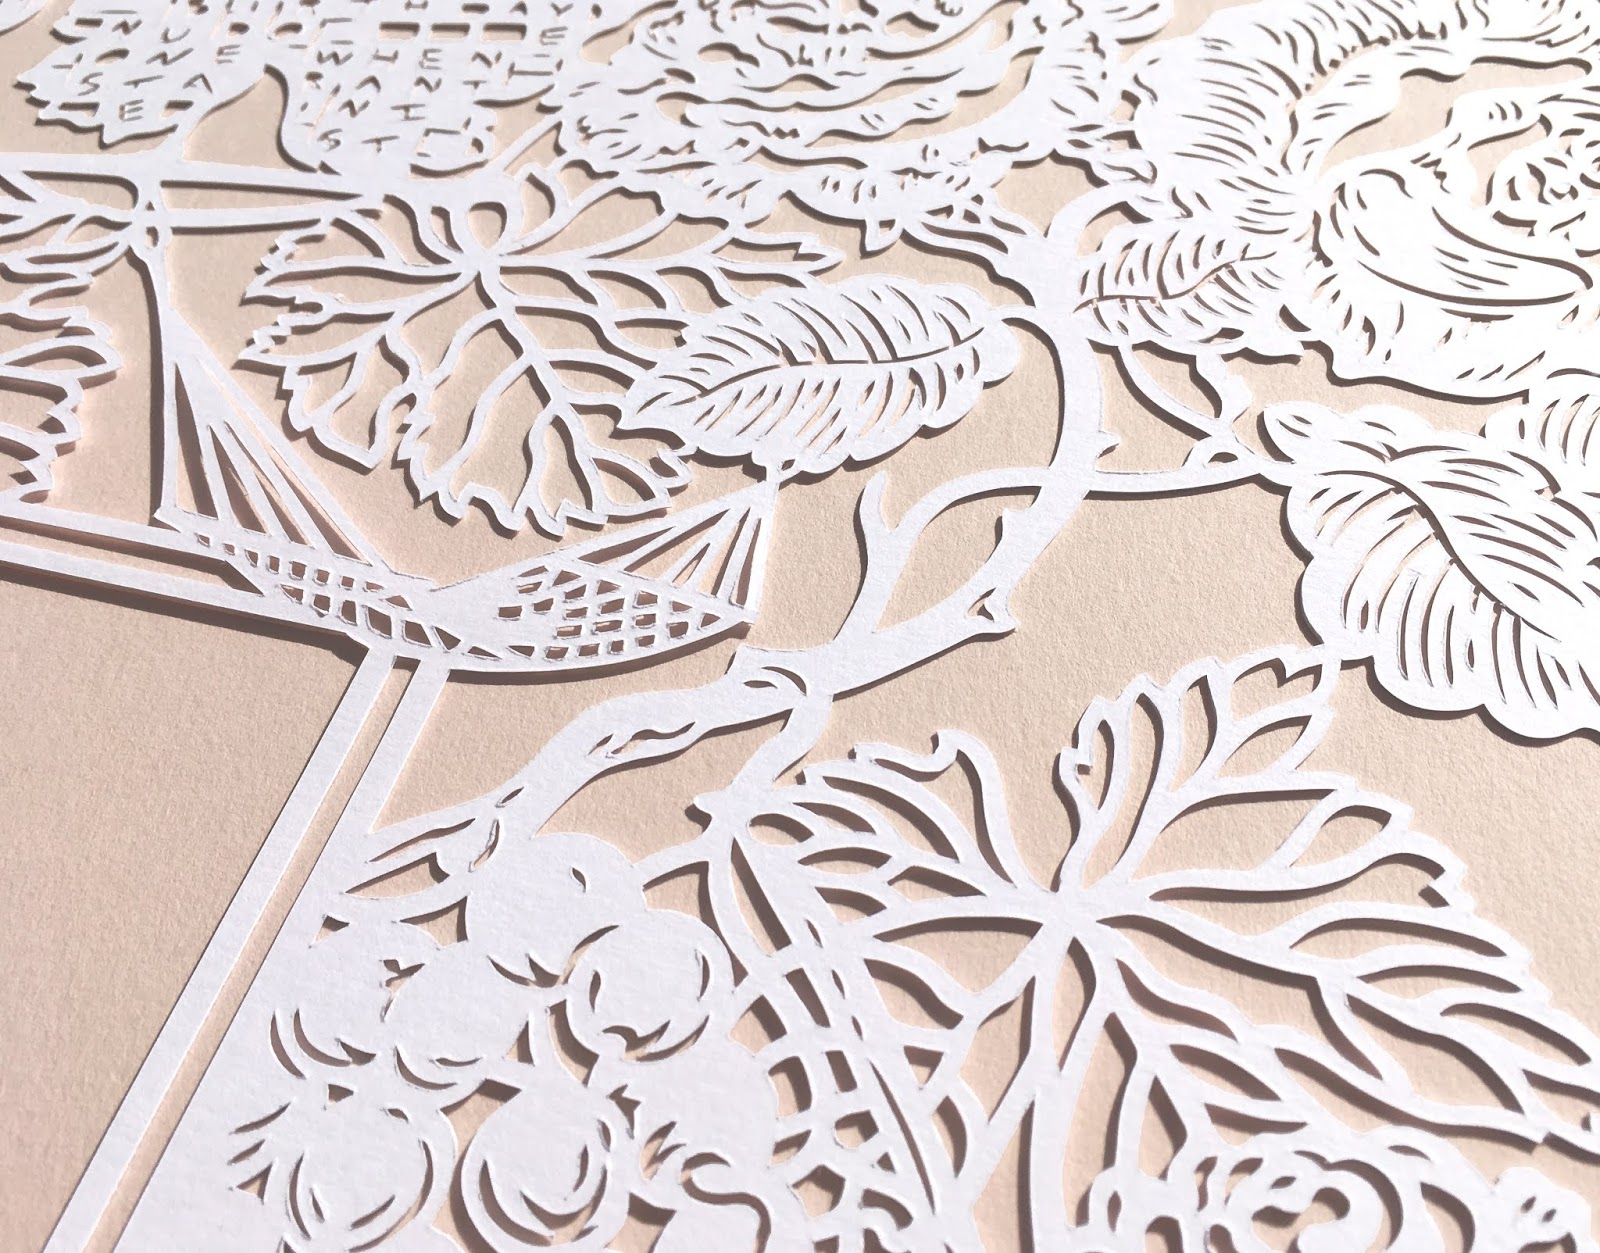 by Woodland Papercuts